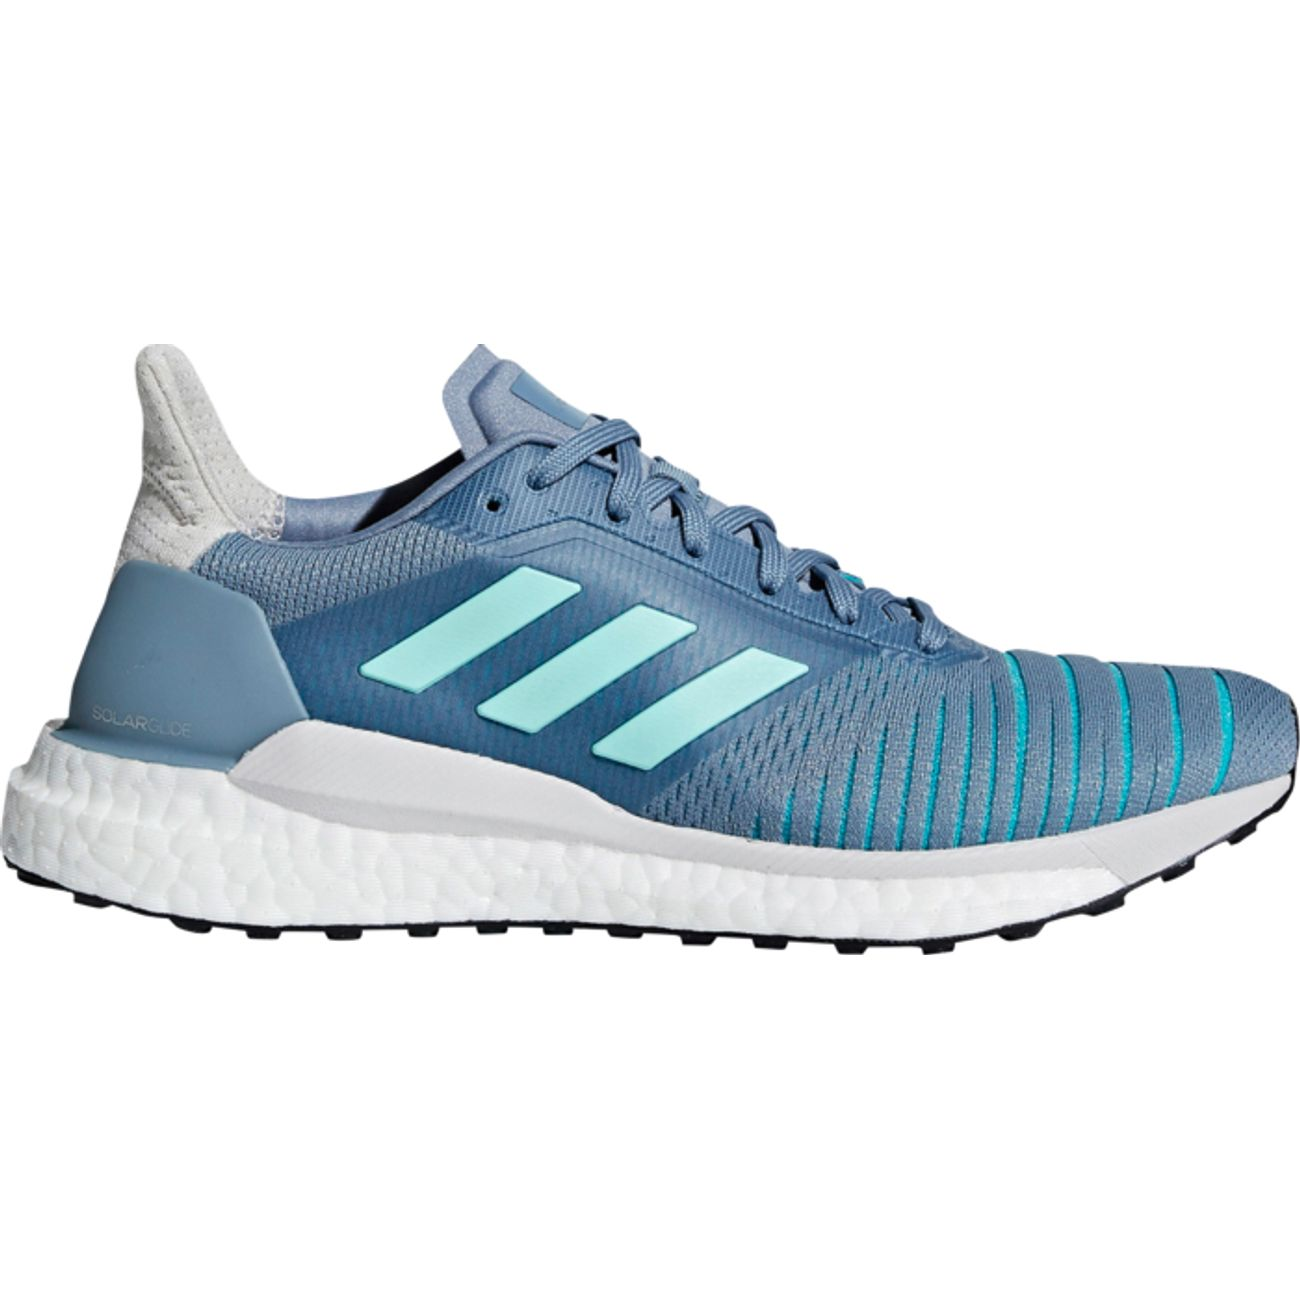 outlet store 5f922 f5f39 CHAUSSURES BASSES running femme ADIDAS SOLAR GLIDE ...